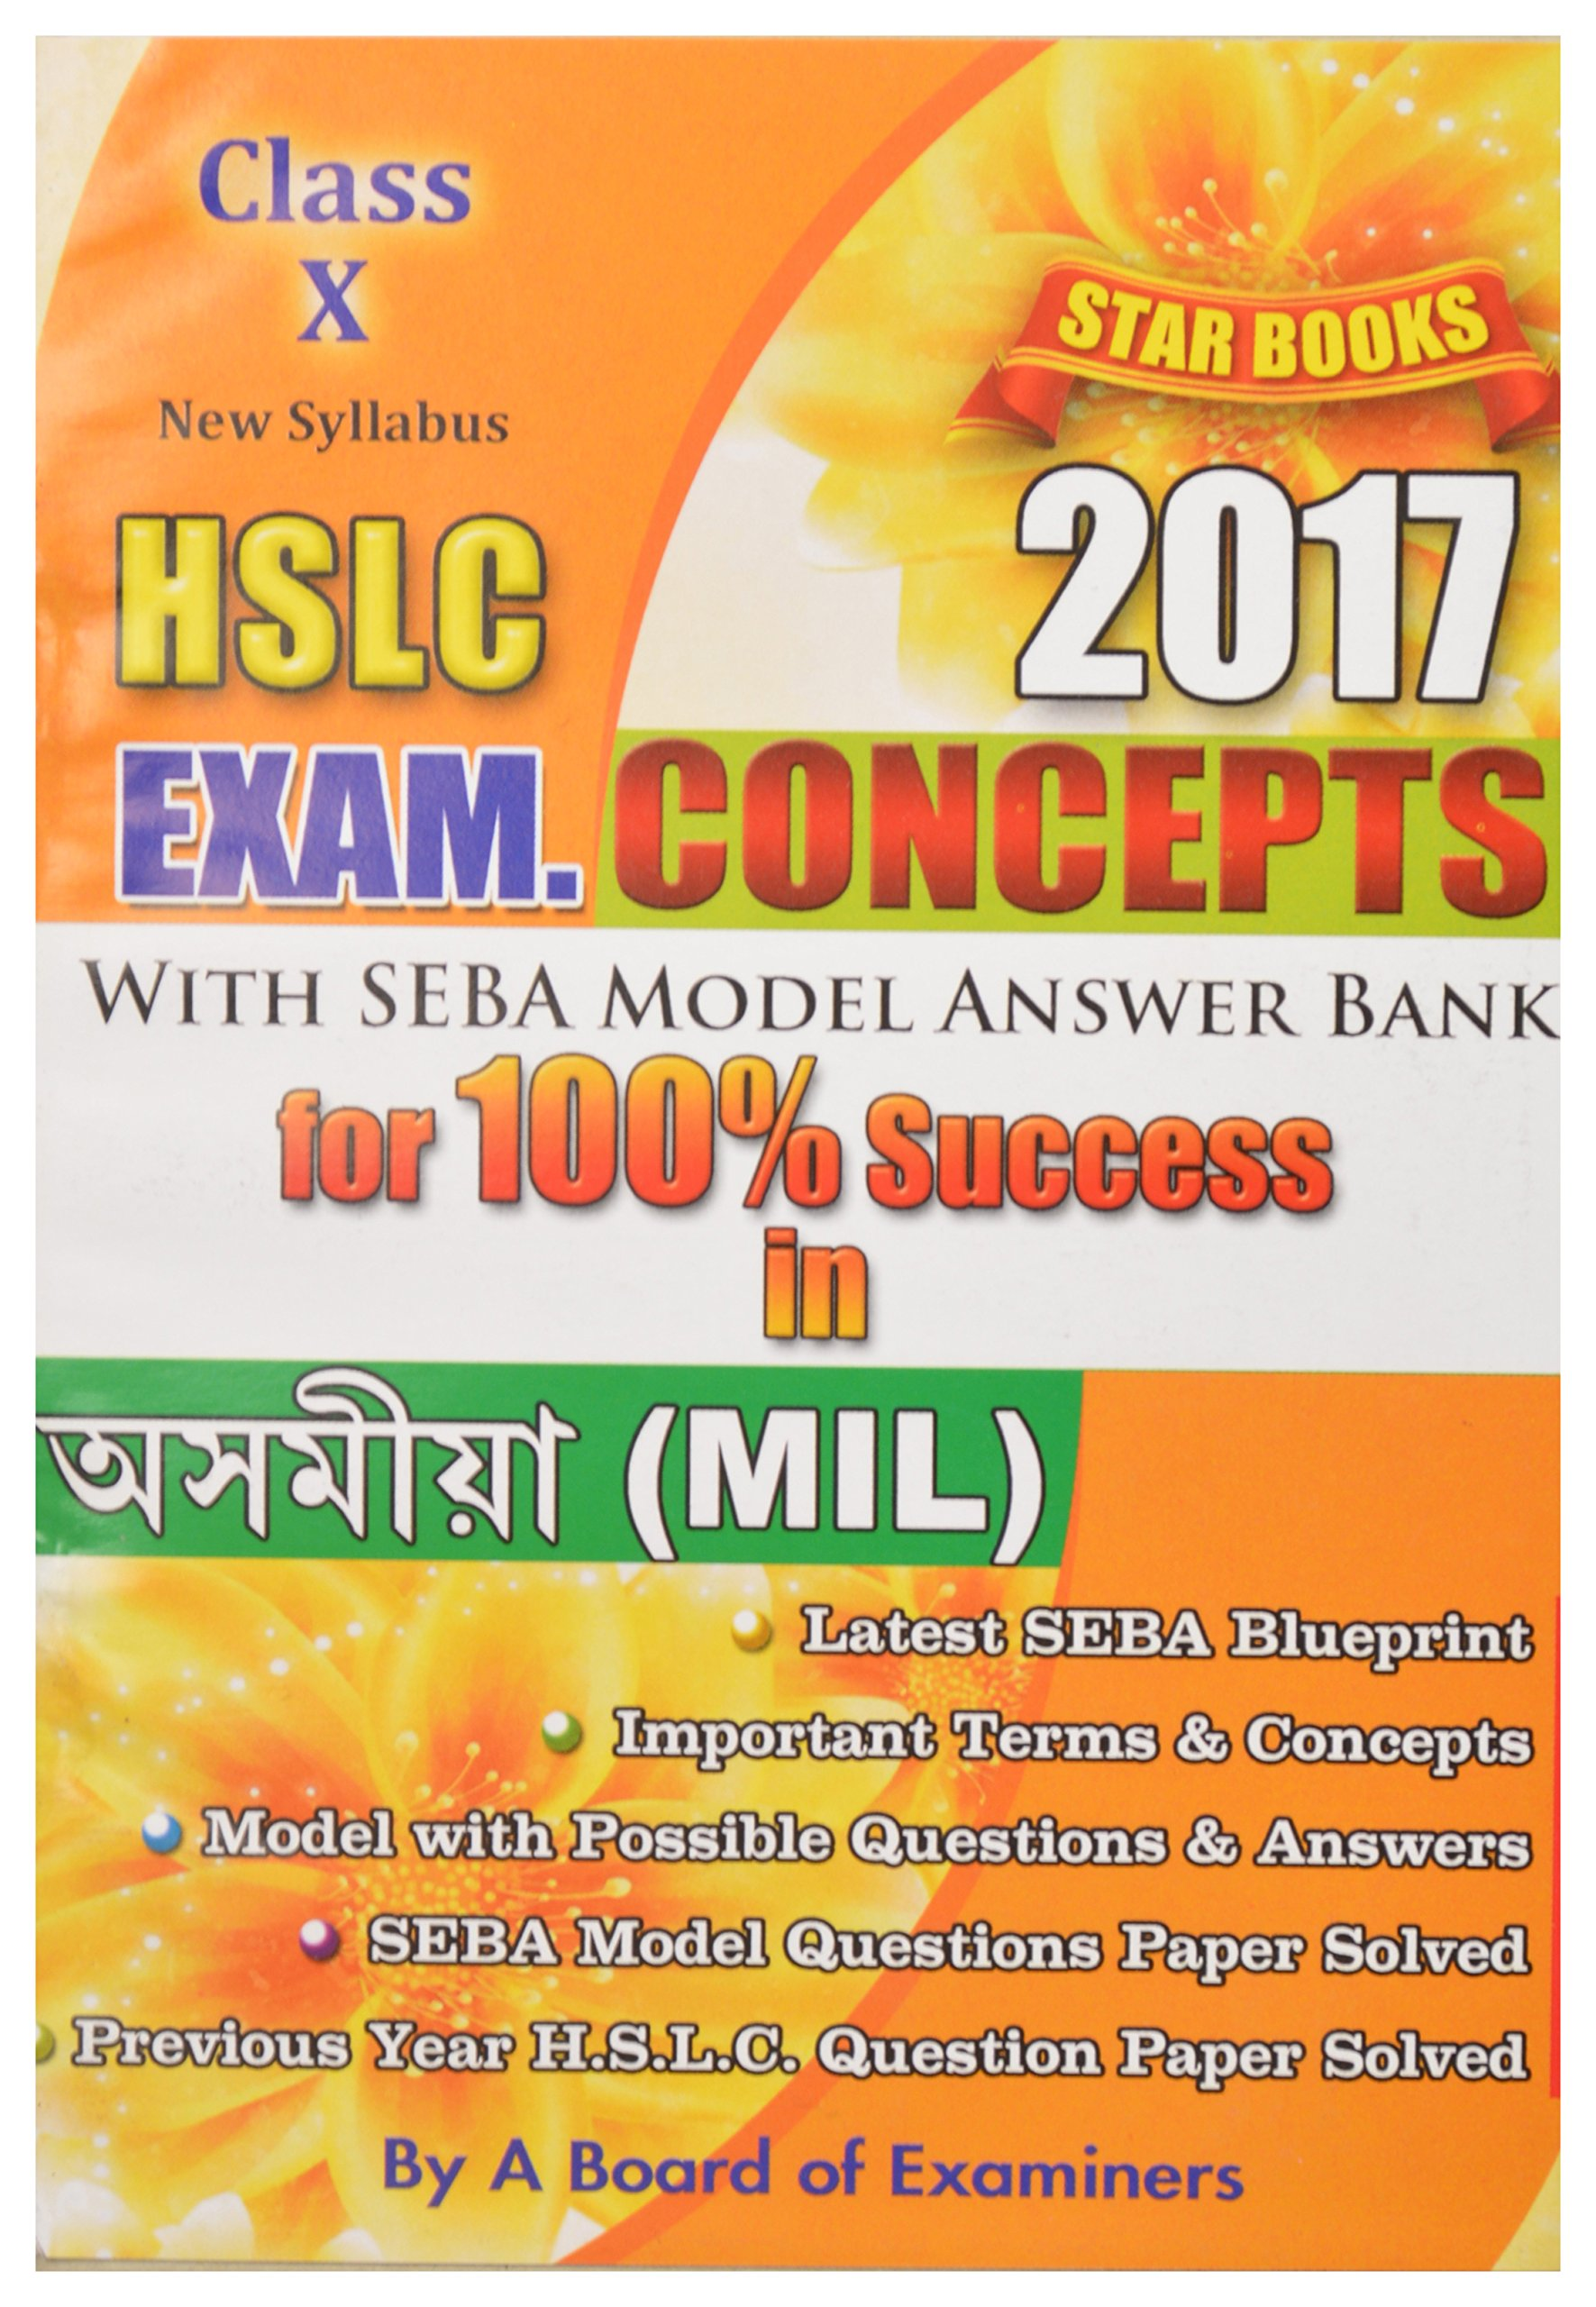 2017 hslc exam concepts mil assamese amazon board 2017 hslc exam concepts mil assamese amazon board examiners books malvernweather Image collections